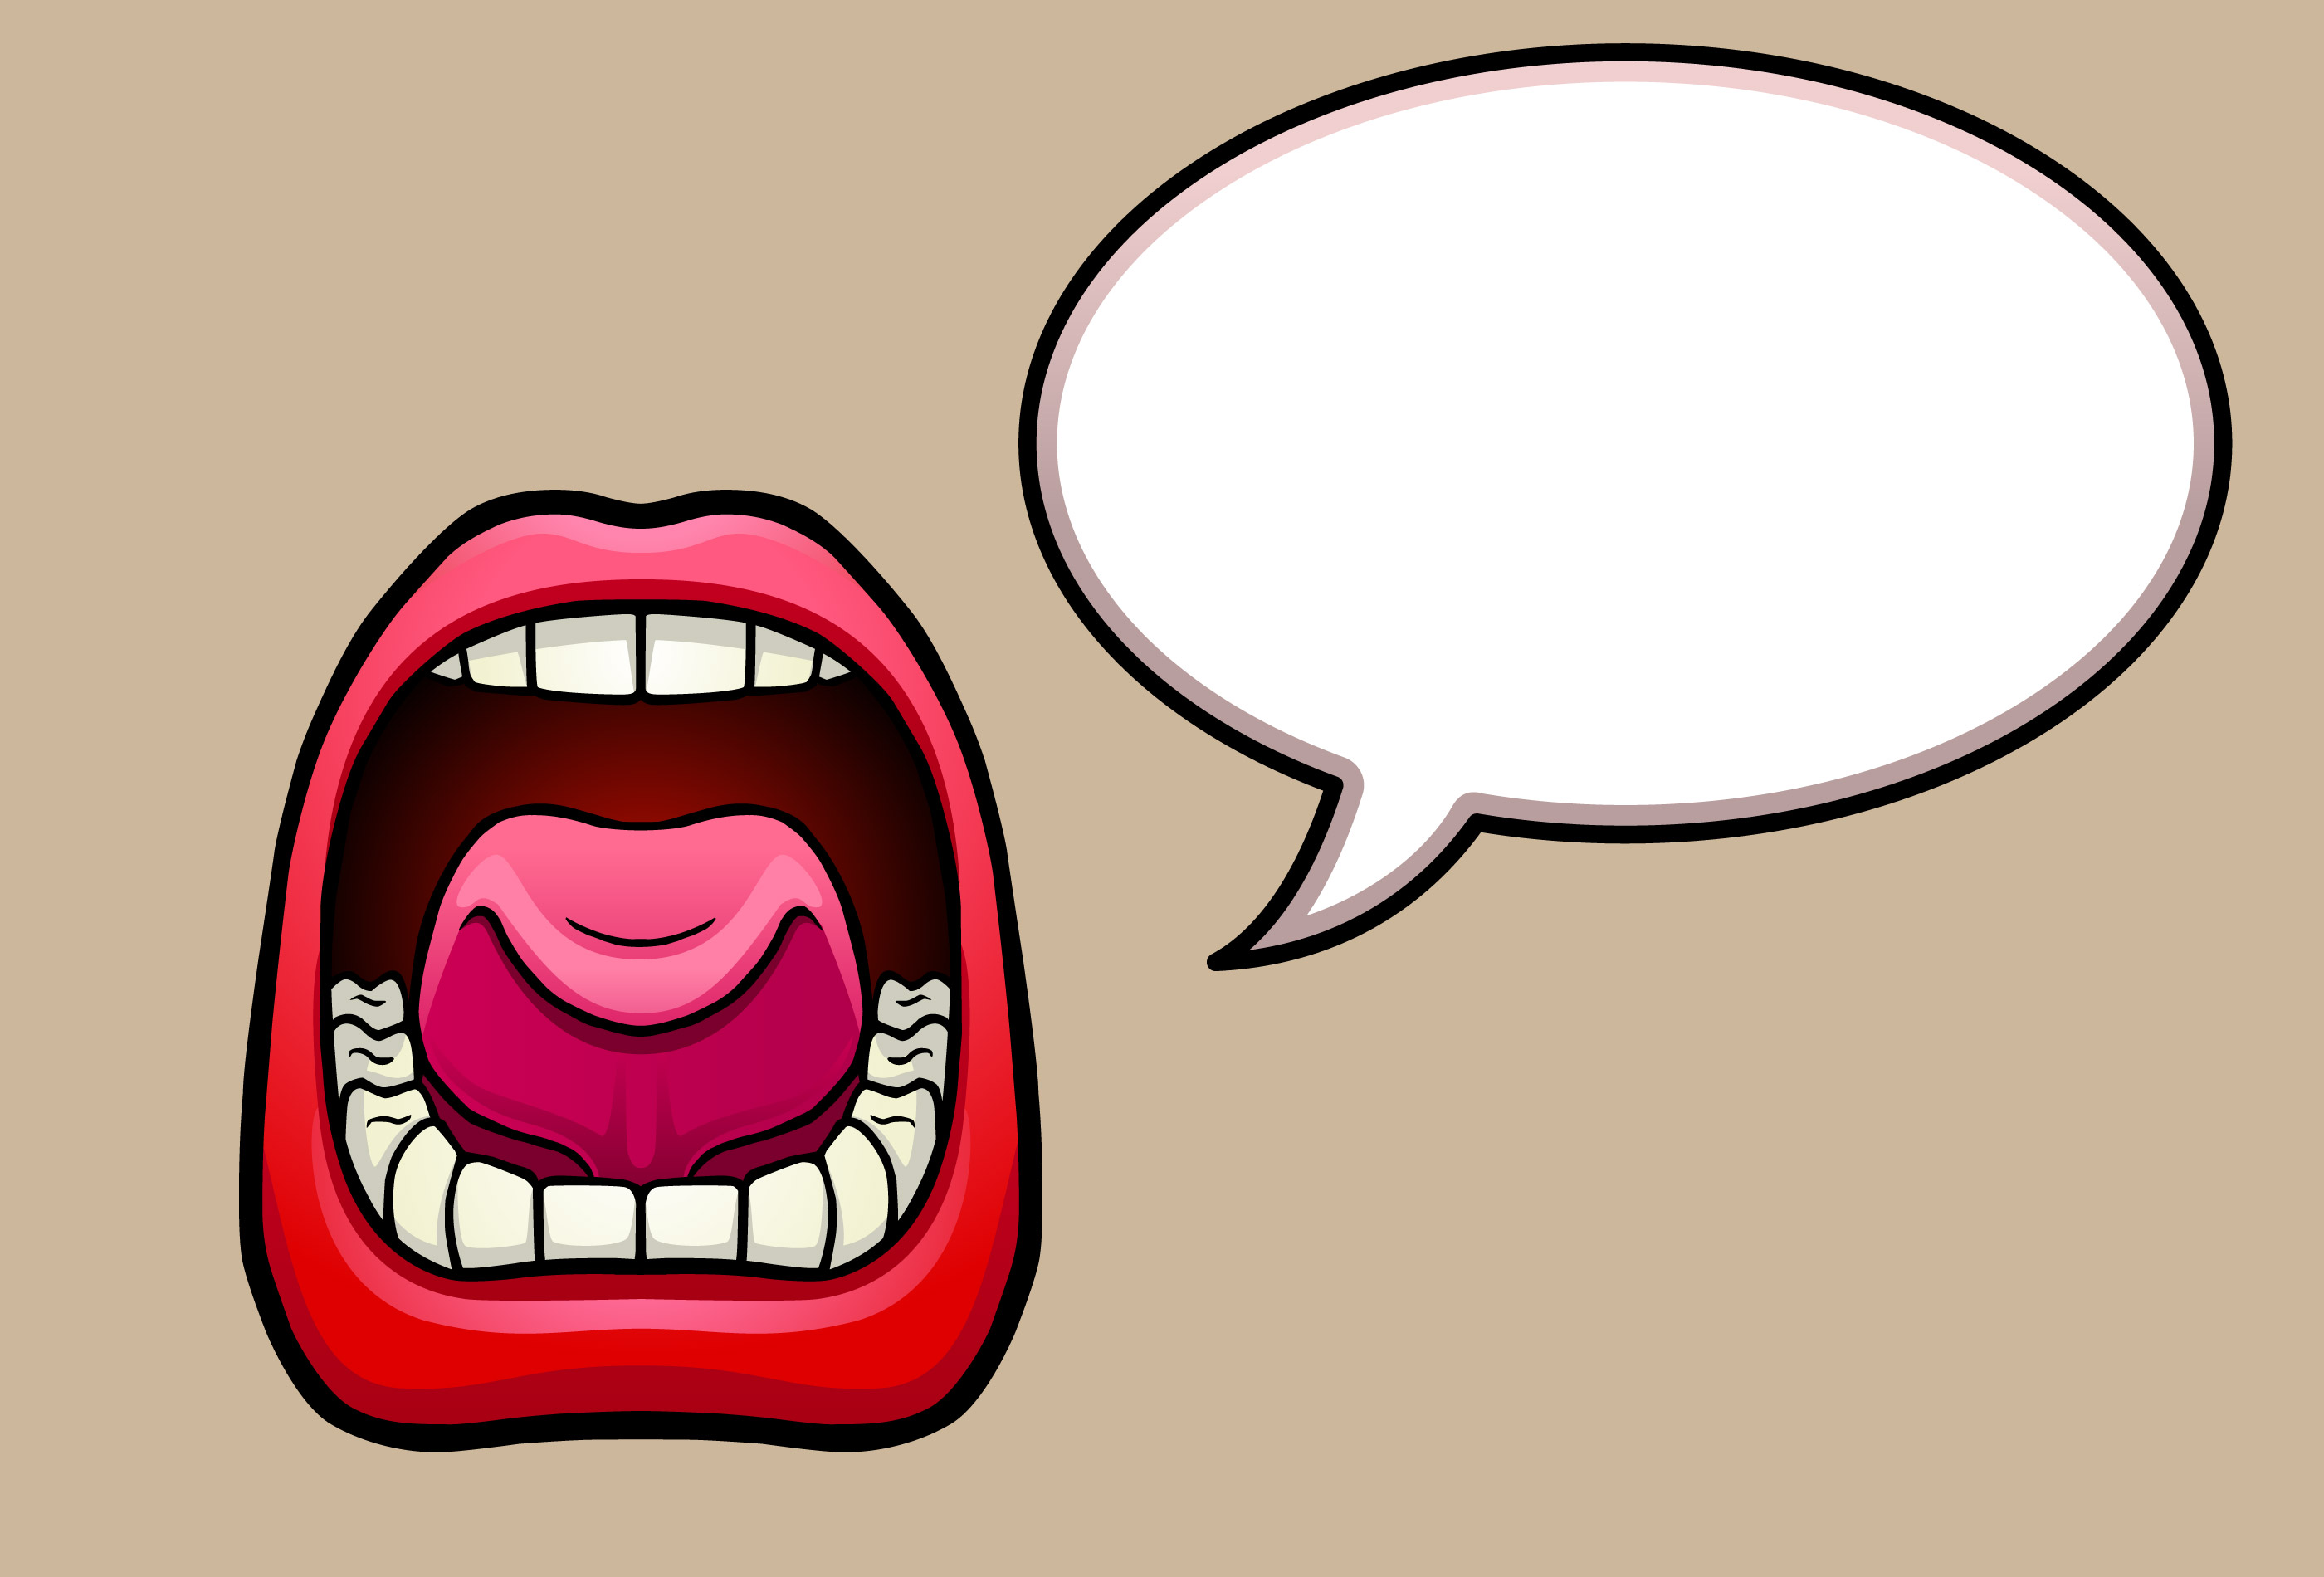 Cartoon Mouth Orange Tongue besides Slime Clipart also A Cartoon Of A Cute Young Girl With Her Mouth Wide Open Gm692118710 127706917 also Person With Speech Bubble further Motor Mouth 20020552. on free clipart talking mouth